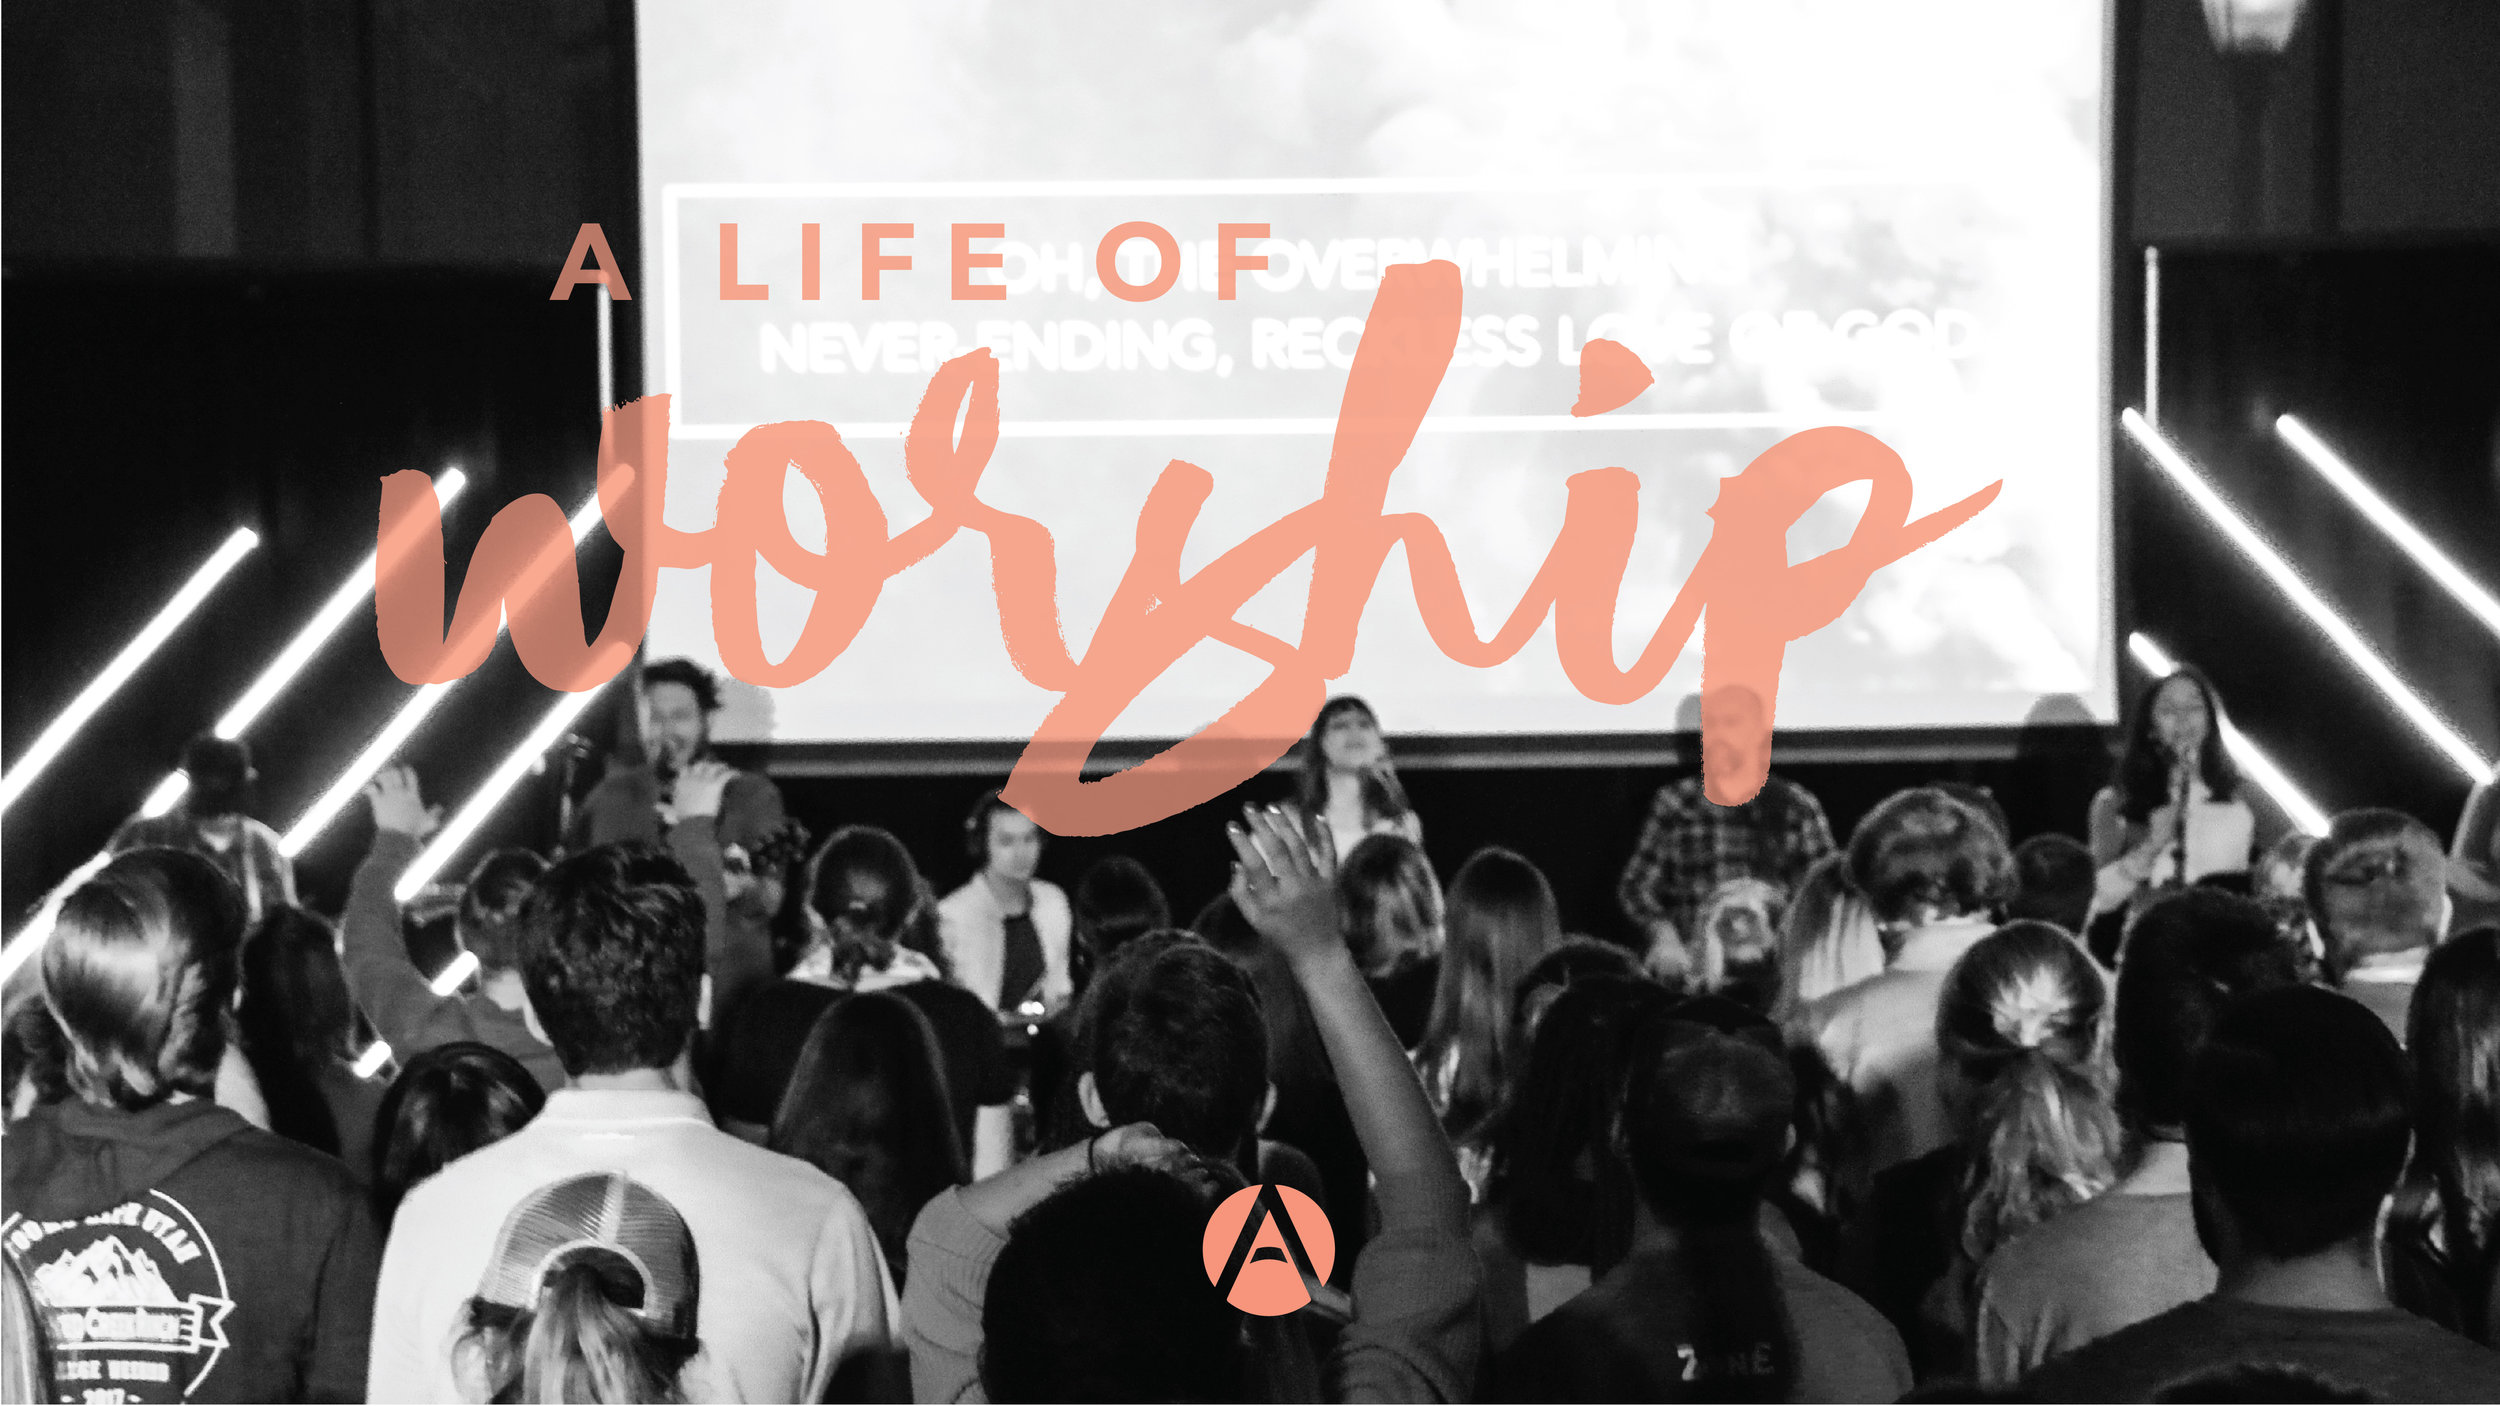 A Life of Worship - What is worship and why do we do it? During this series, we talk about how living a lifestyle of worship is so much bigger than just singing songs in church on Sundays.